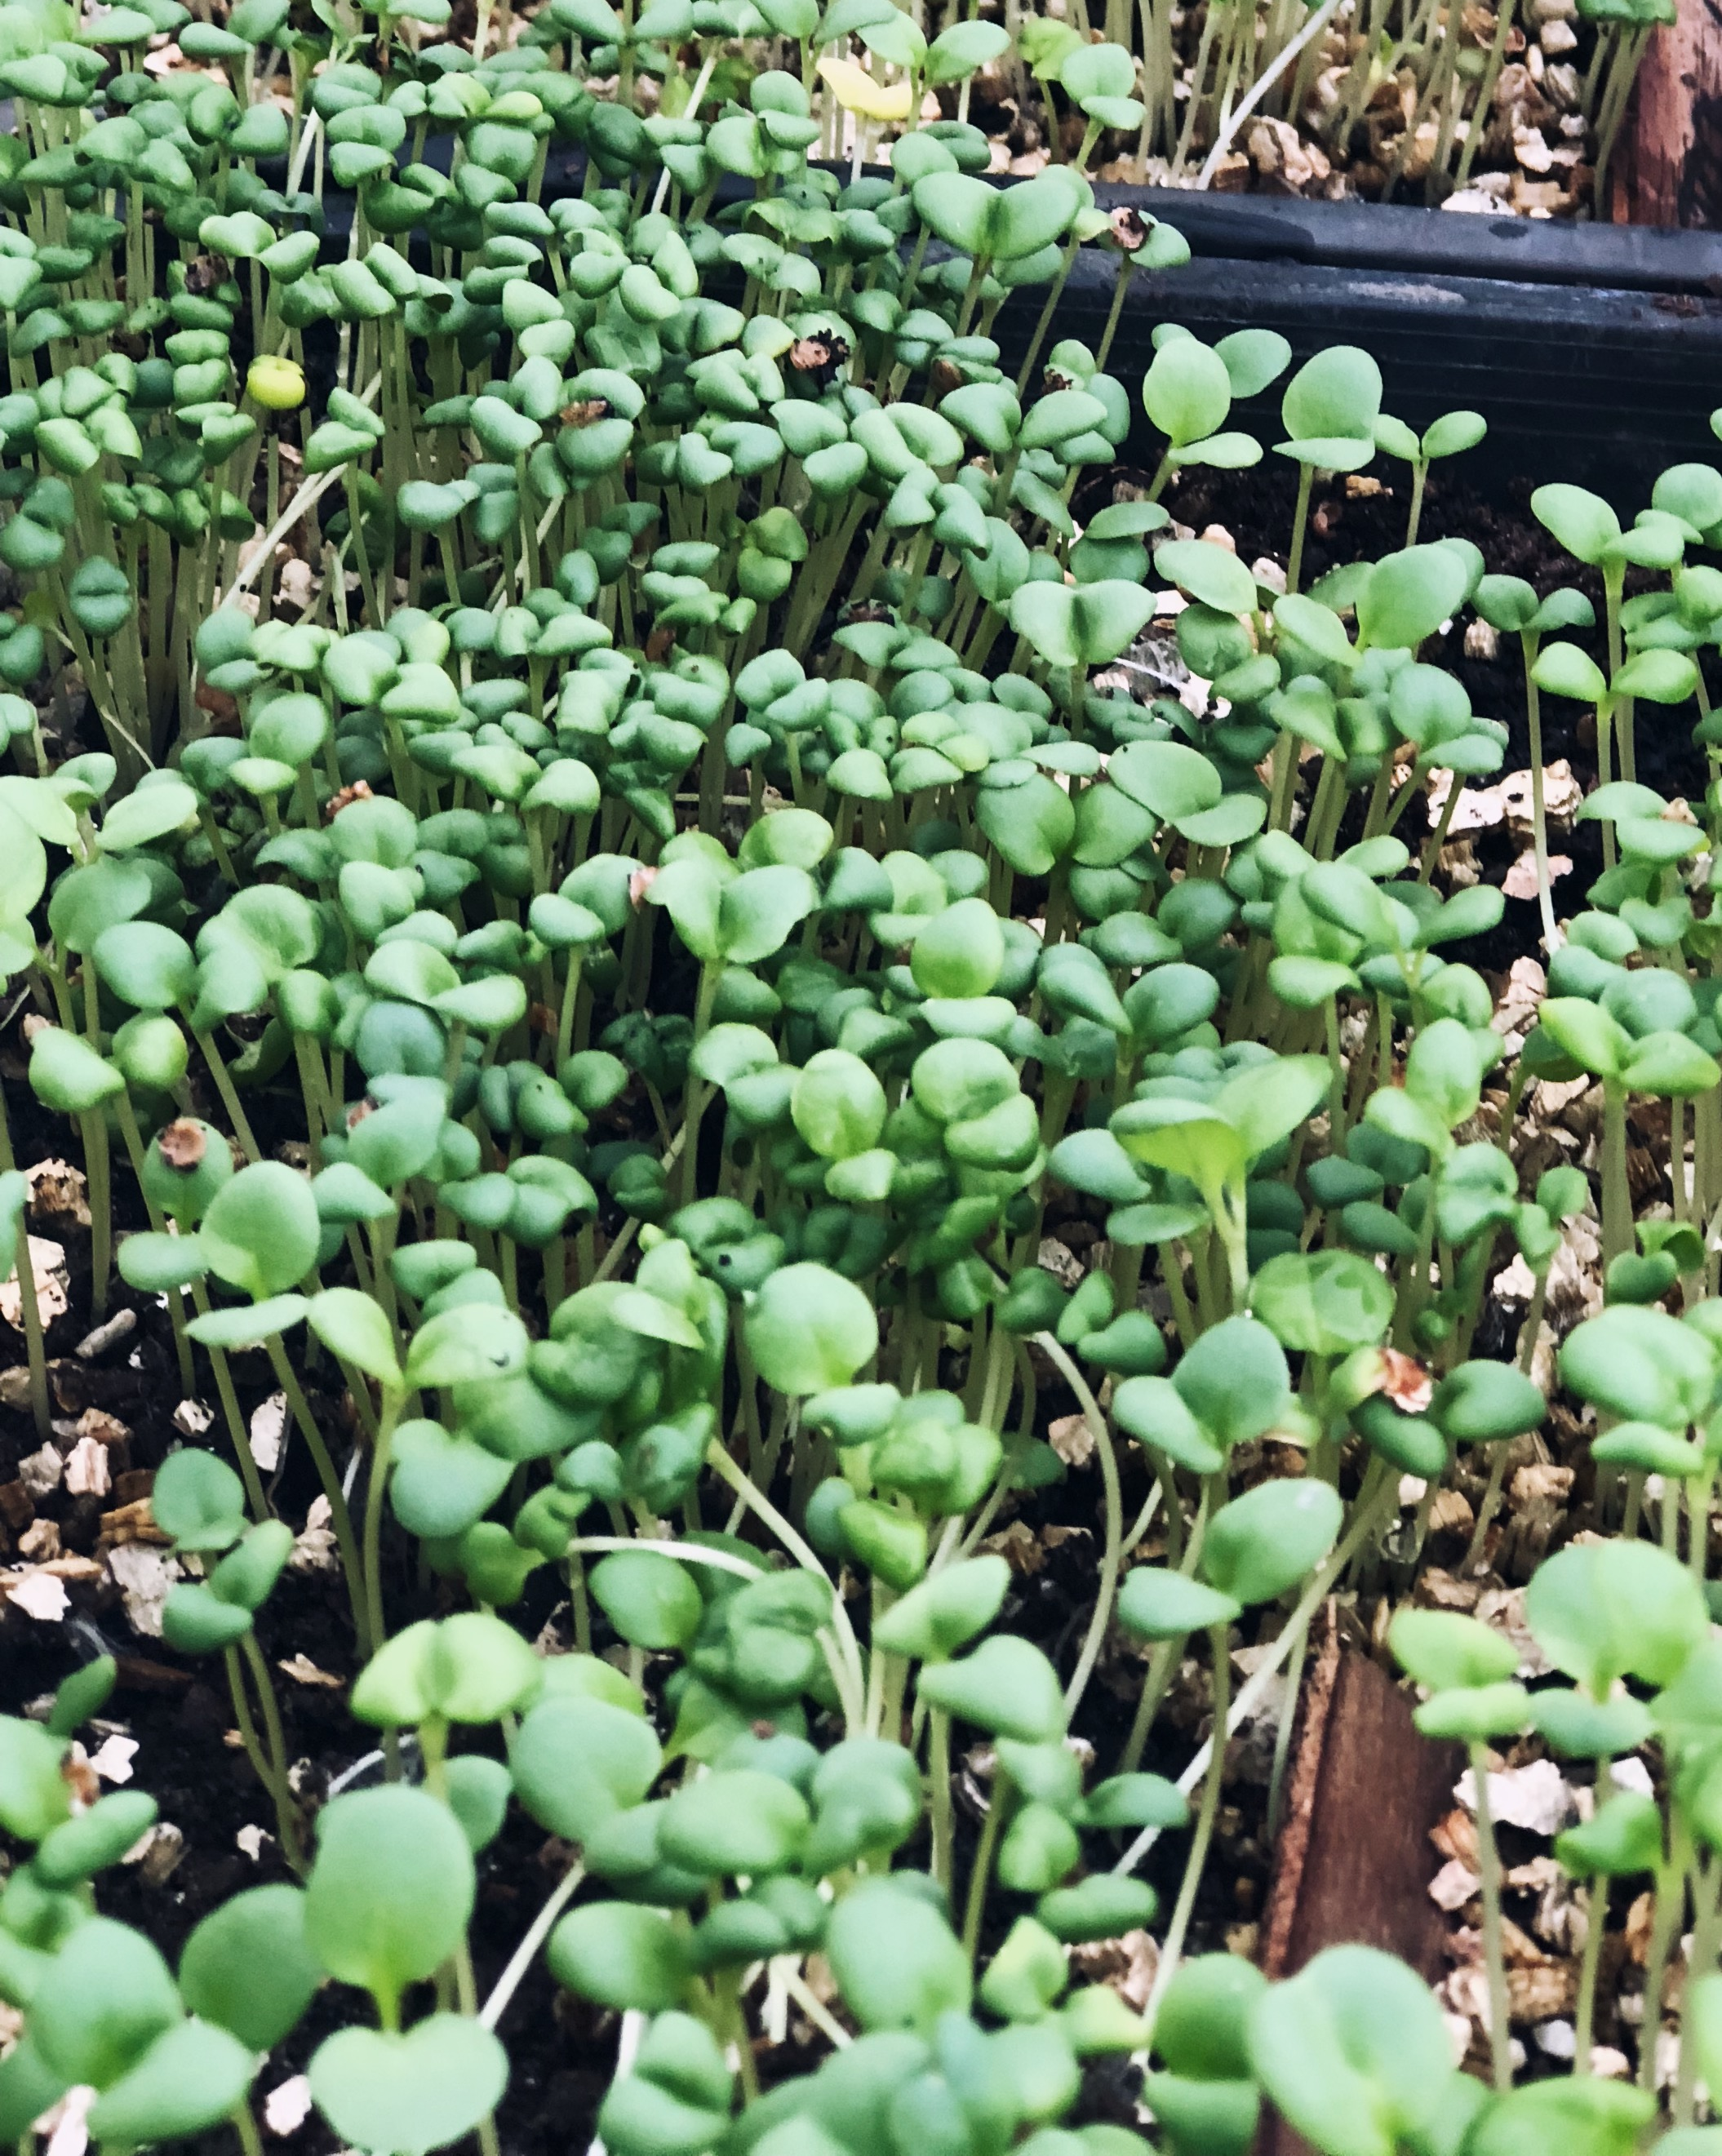 - 6. Once 50-70% of seedlings have emerged, move the tray out of its chamber (plastic box) and put it in a sunny location or simply lift the lid.Move seedlings outside when big enough to handle and harden off for around a week before planting into their final home.